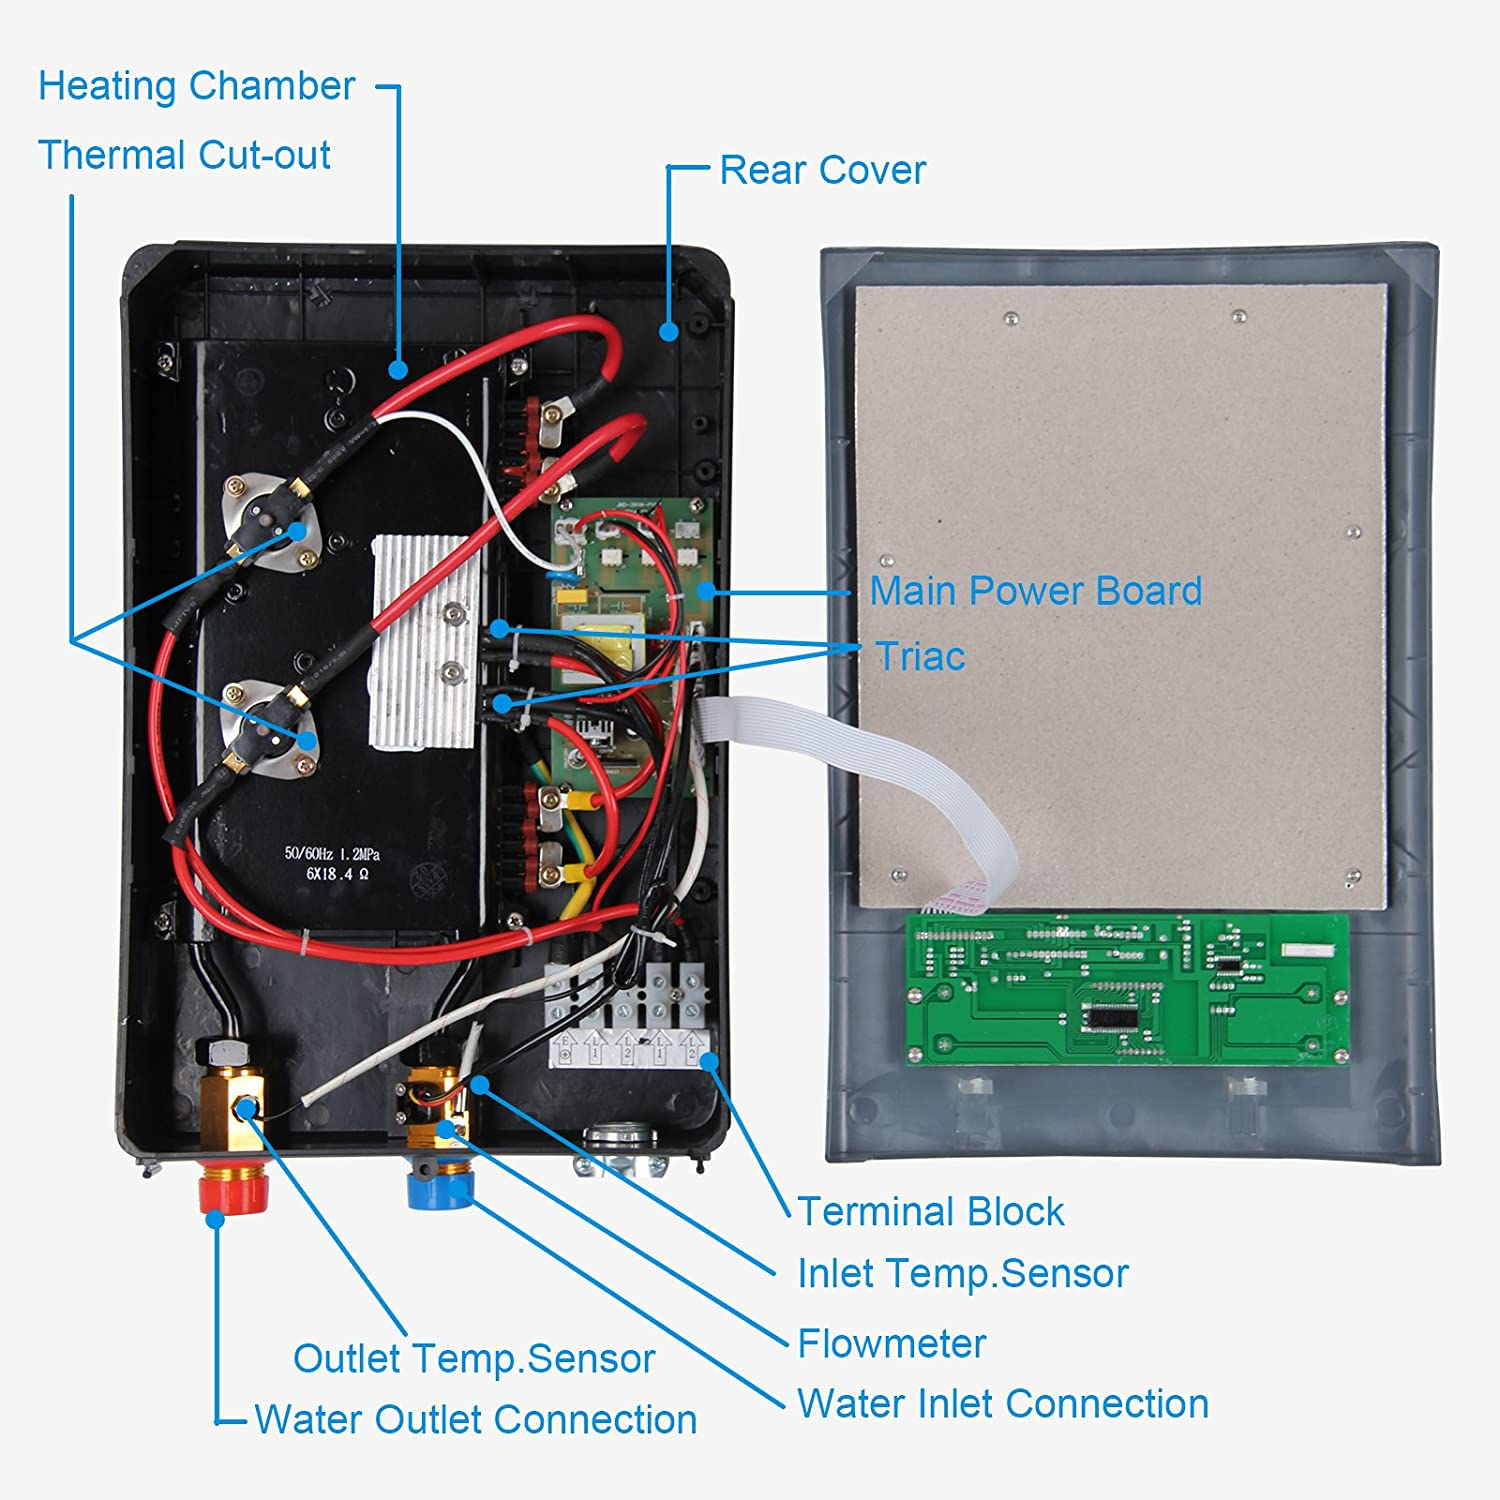 Diagram Eemax Wiring Eem24013 Data Schema Triac 0 Point Switch Circuit Electronic Diagrams Electric Tankless Water Heater 18 Kw At 240 Volts 75 Amps Instant Smart Car